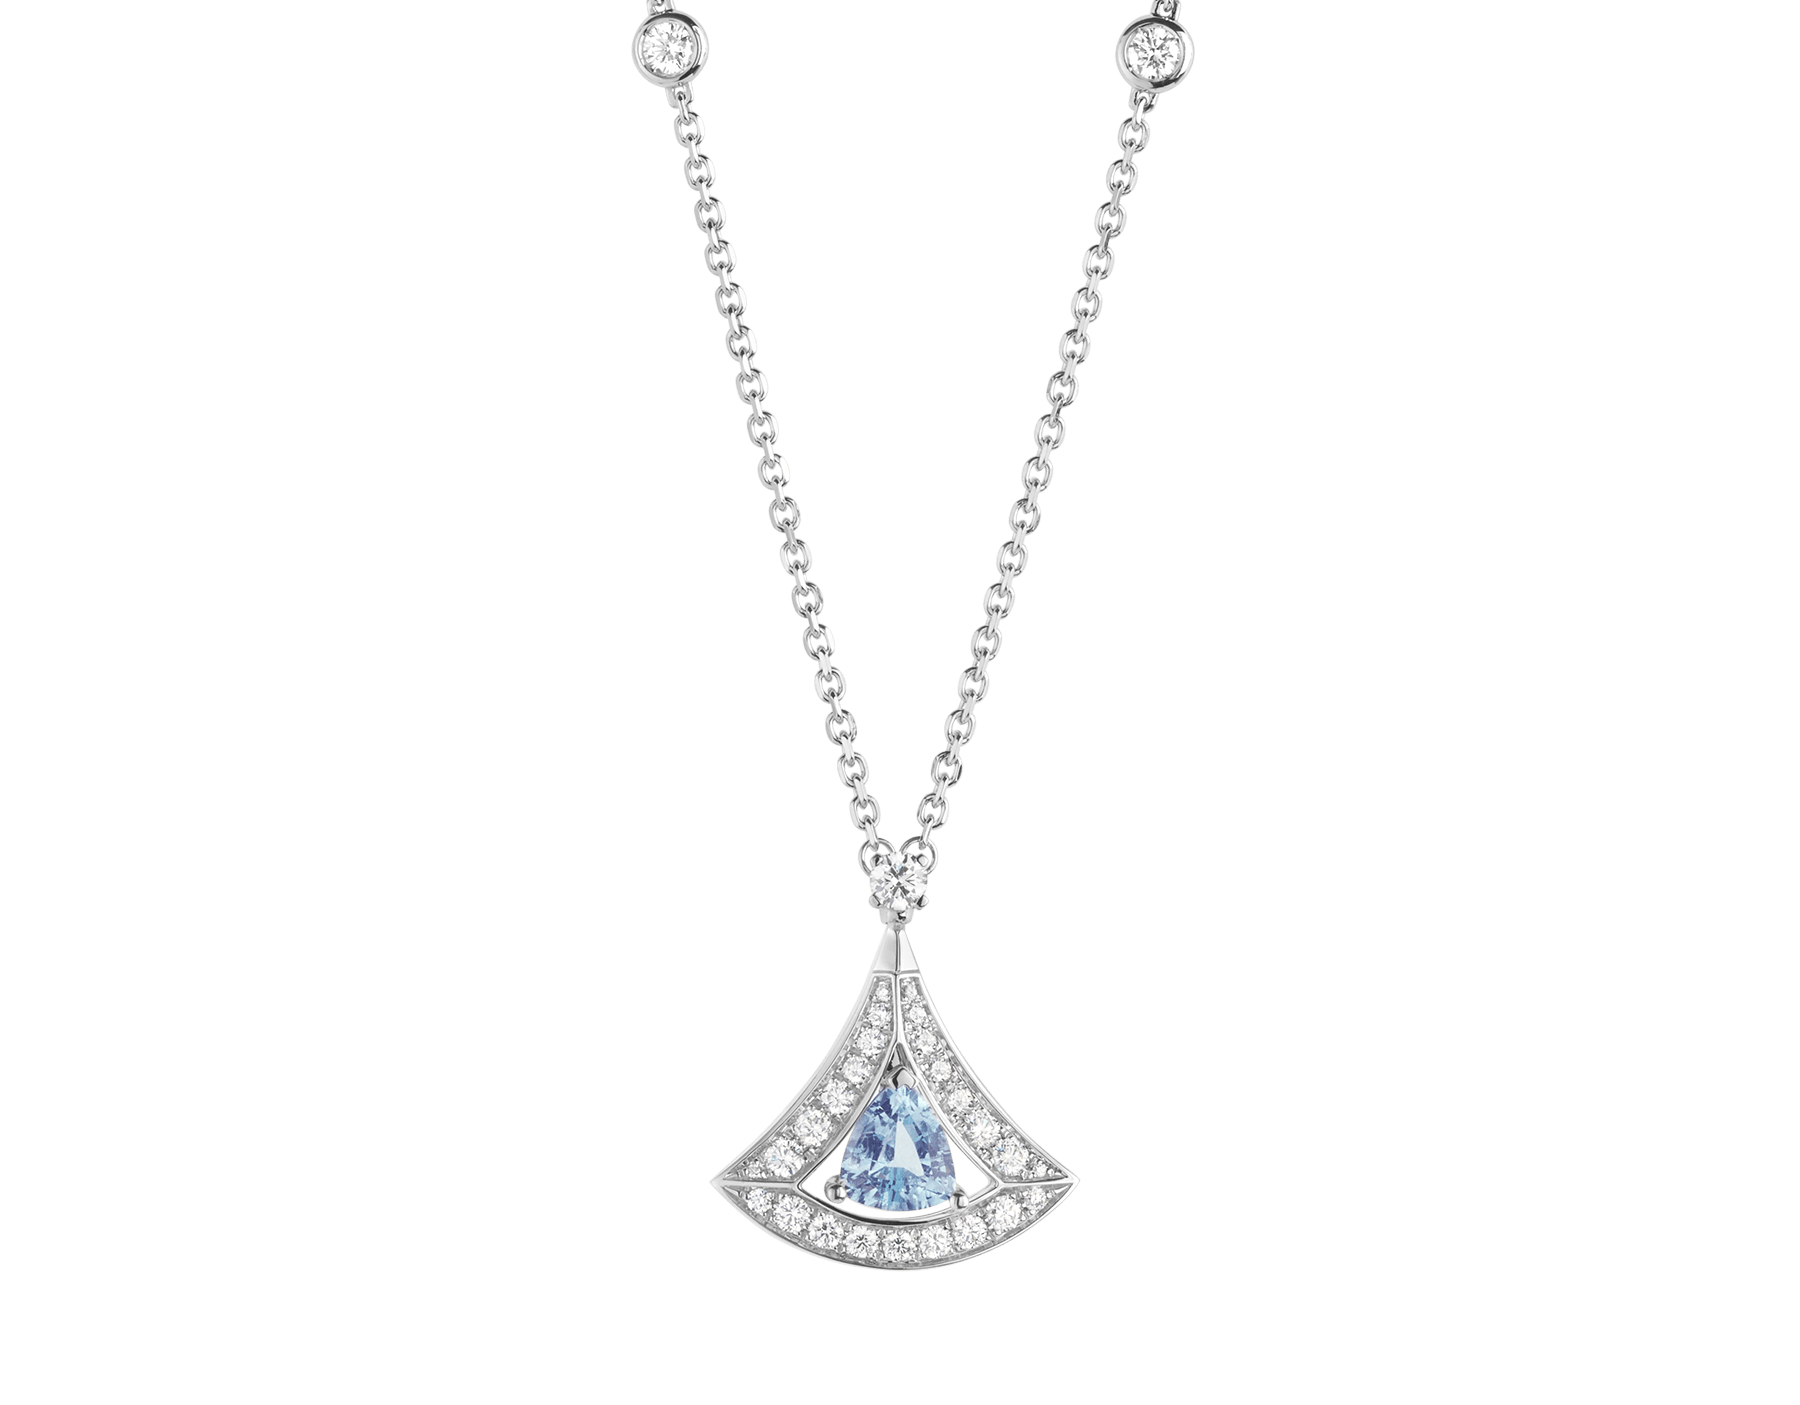 DIVAS' DREAM openwork necklace with 18 kt white gold chain set with diamonds and 18 kt white gold pendant with an aquamarine and set with pavé diamonds. 354052 image 1